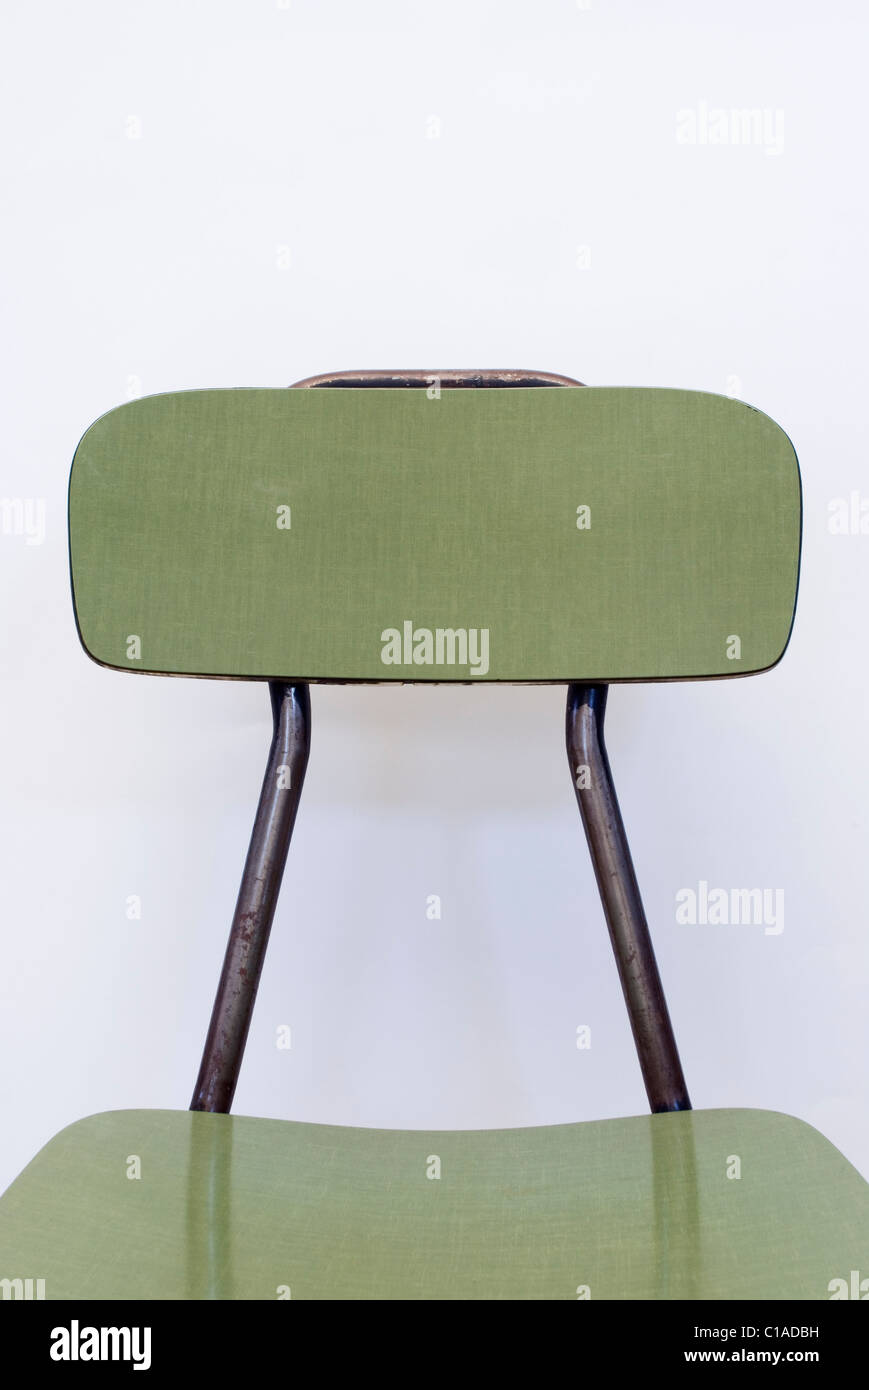 vintage laminated chair - Stock Image